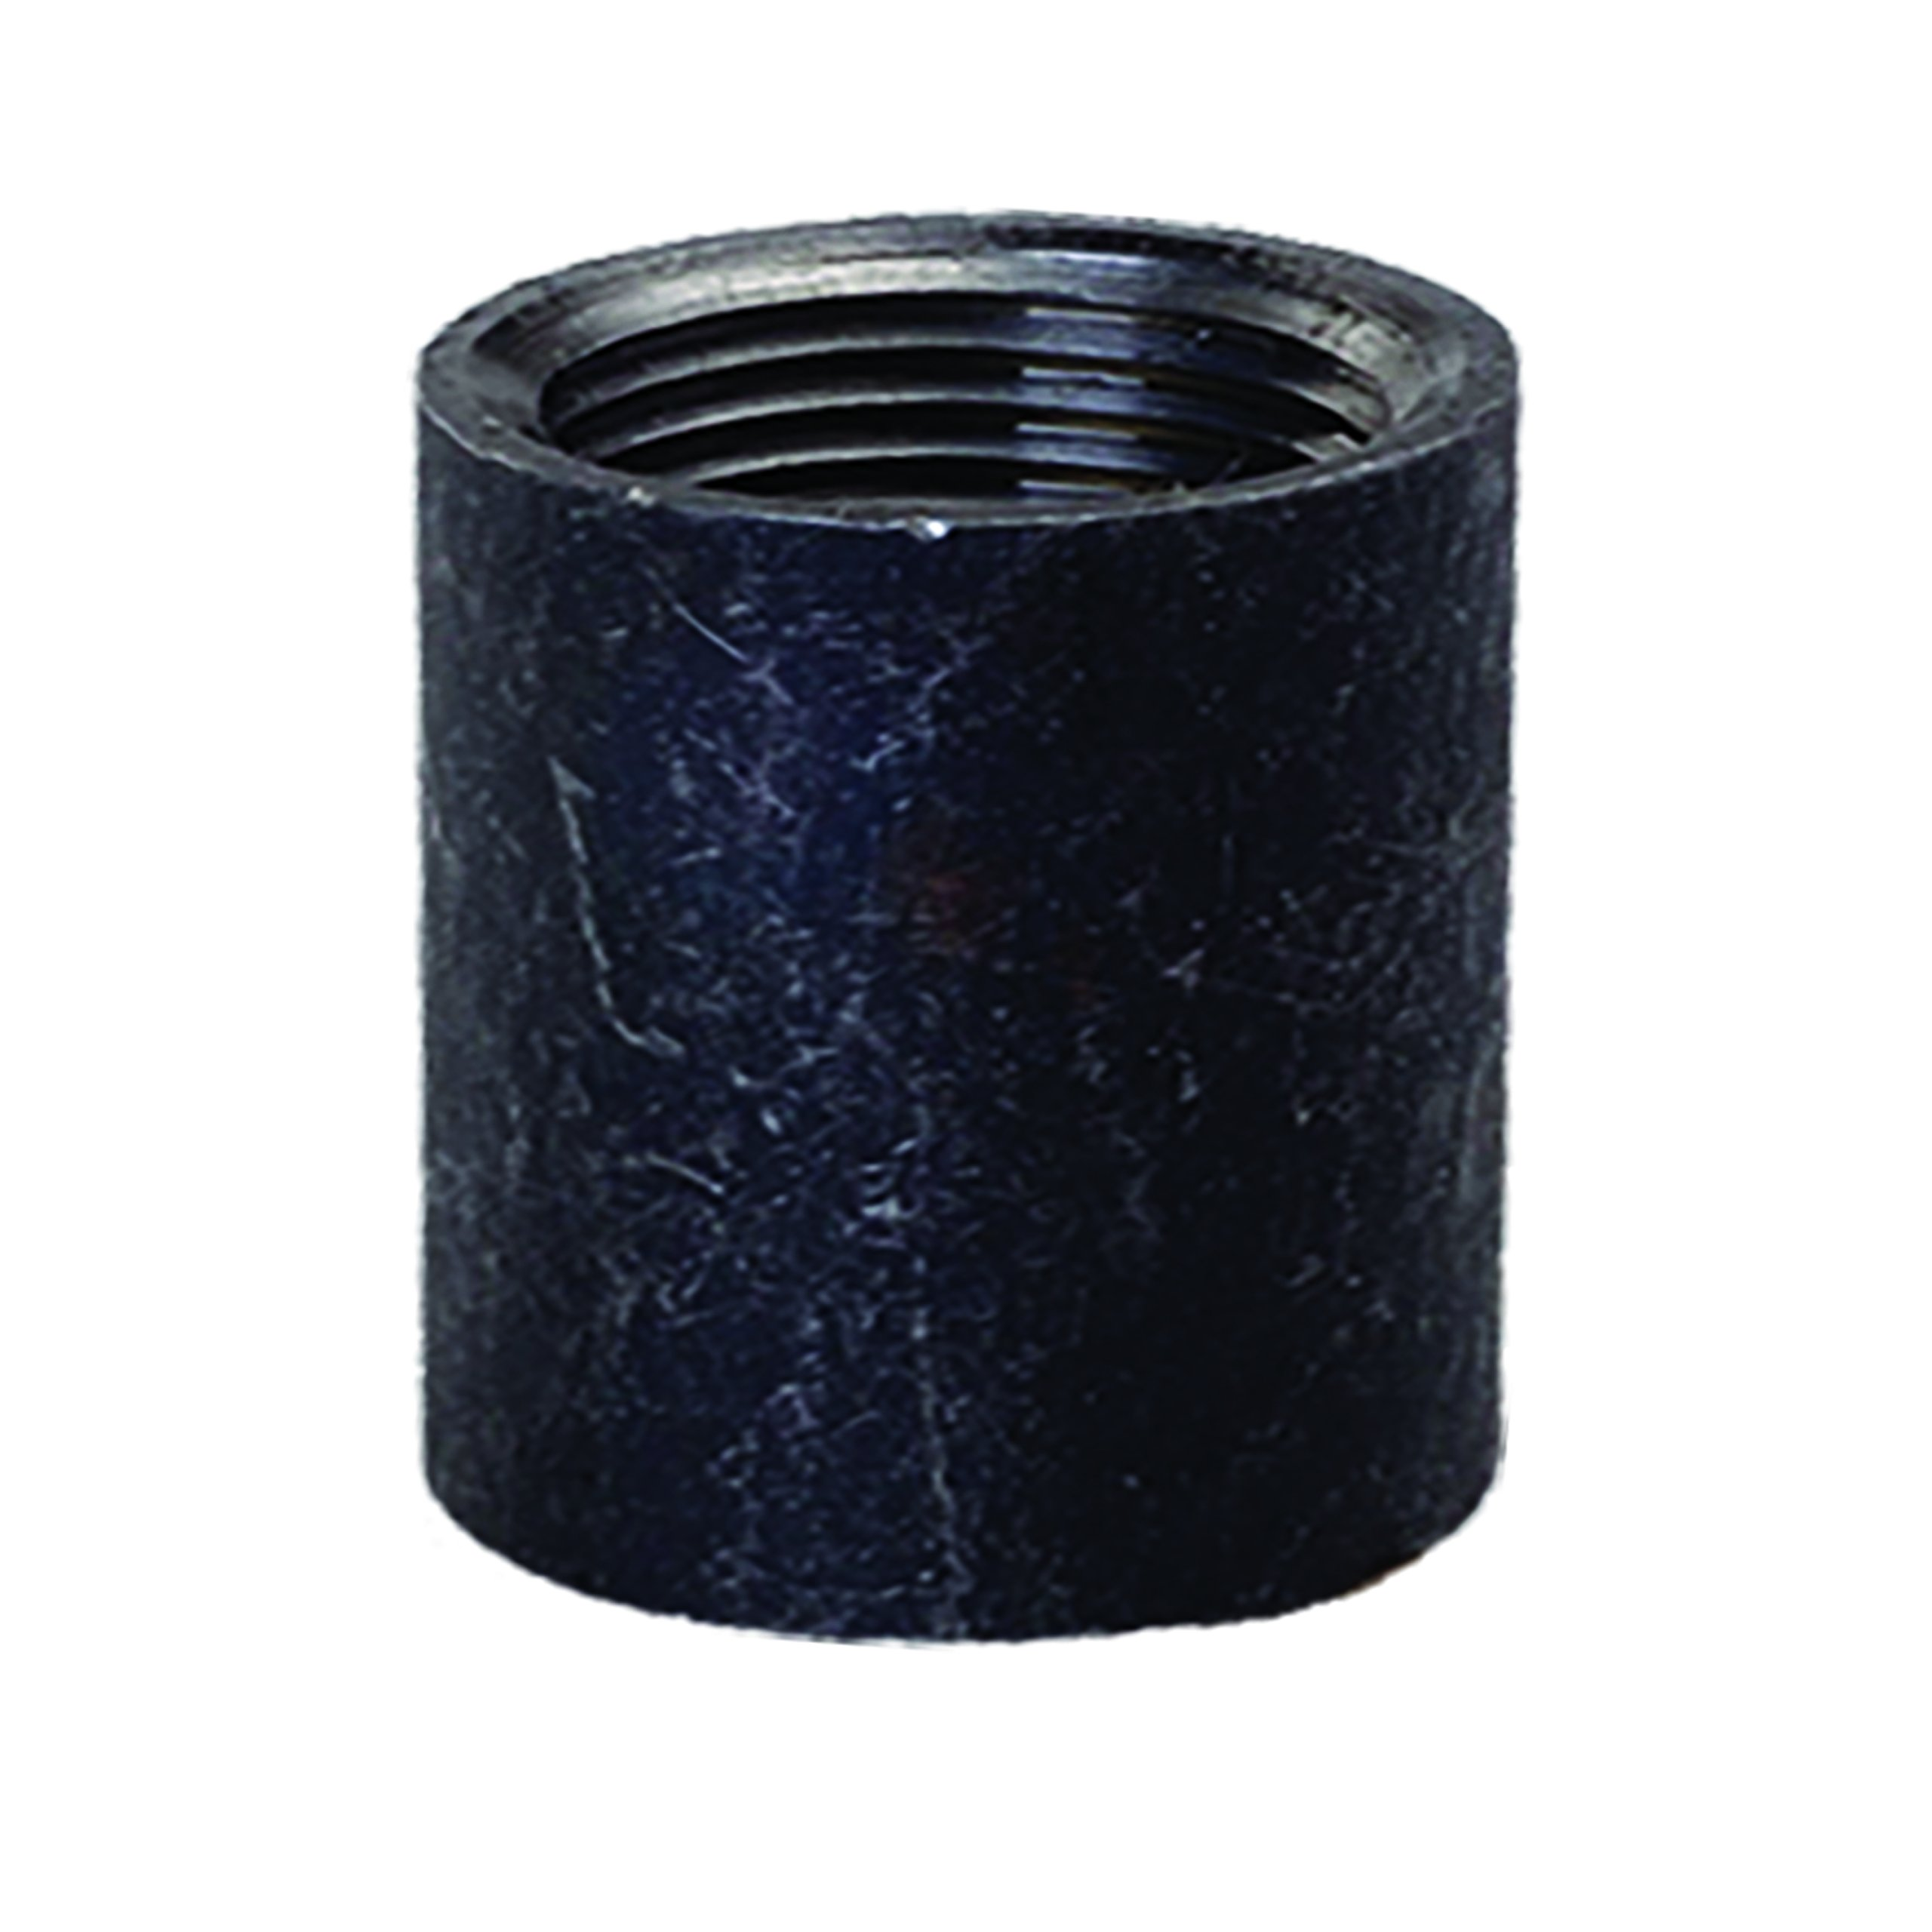 Everflow Supplies MTTHC600 6'' Black Merchant Steel Half Coupling with Female Connection with Tapered Tapped Thread